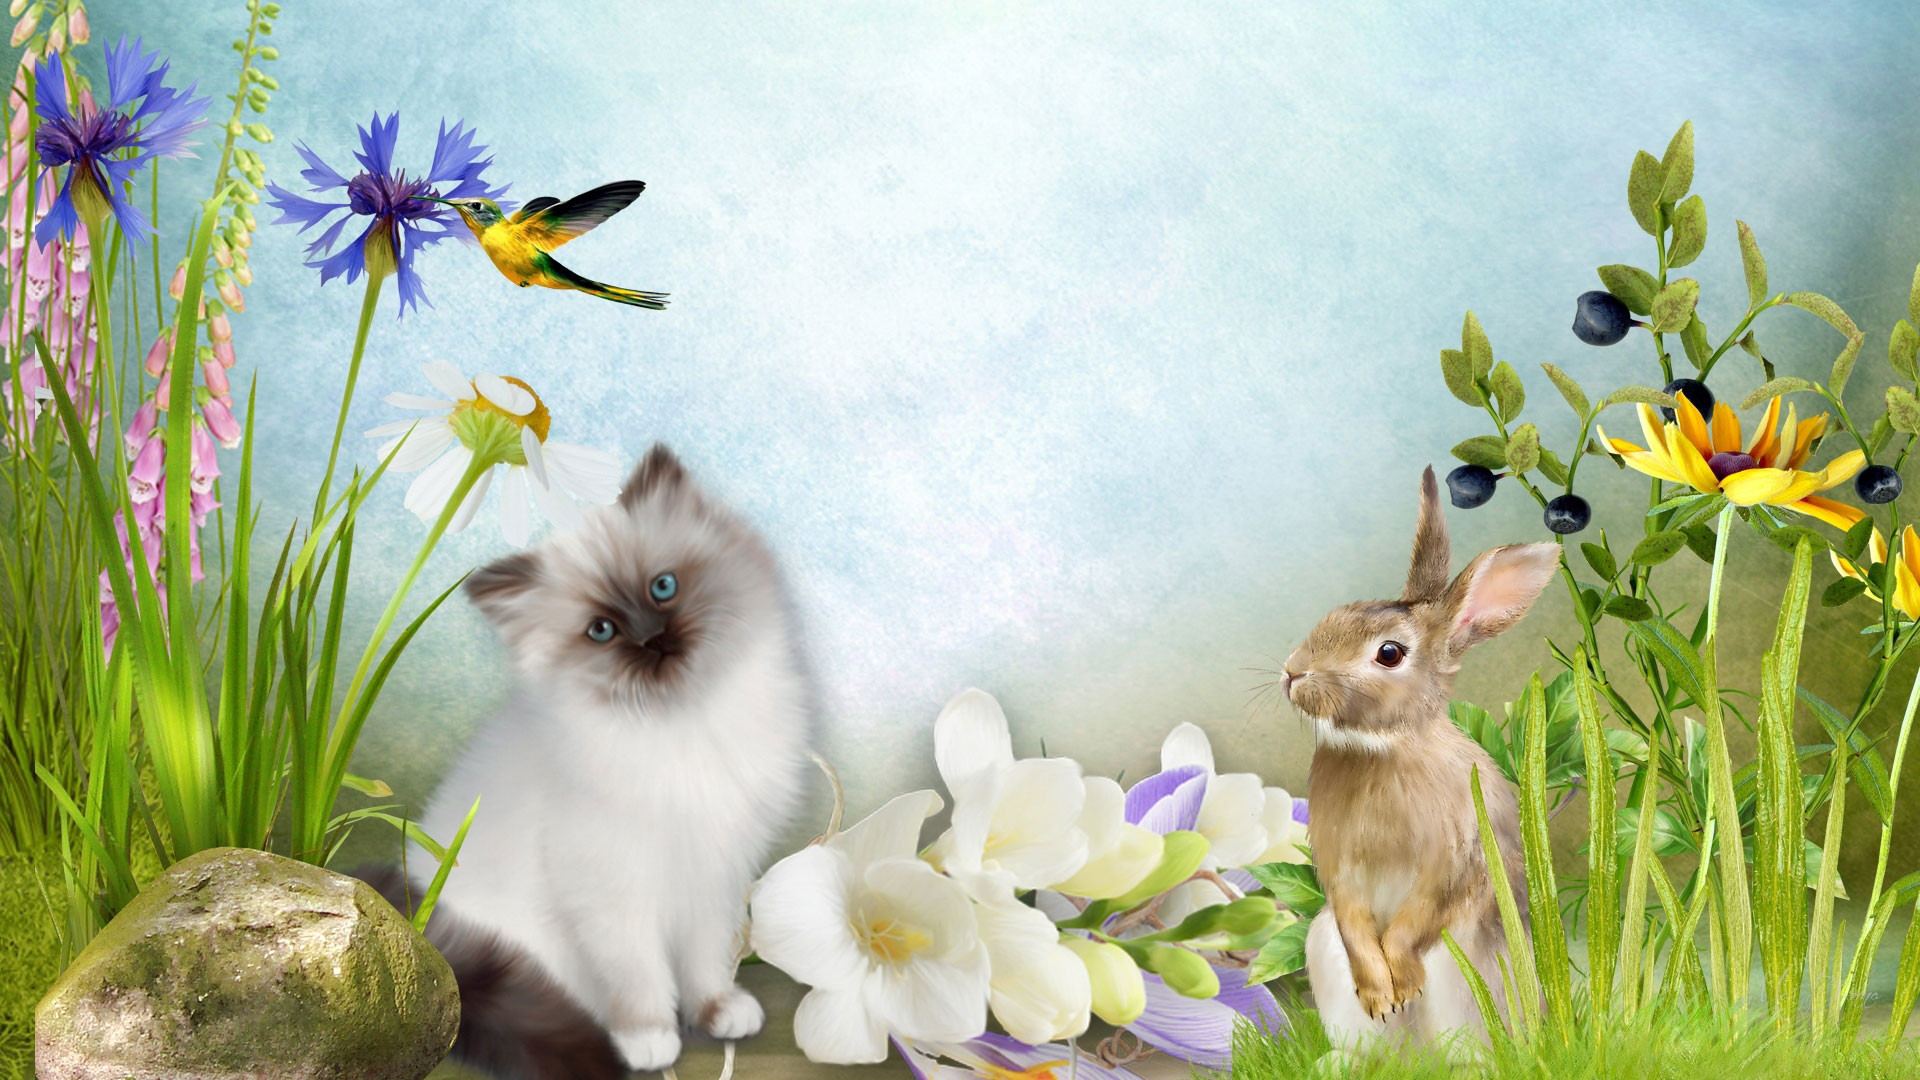 1920x1080 hd pics photos animated cat rabbit nature flowers birds hd quality desktop  background wallpaper